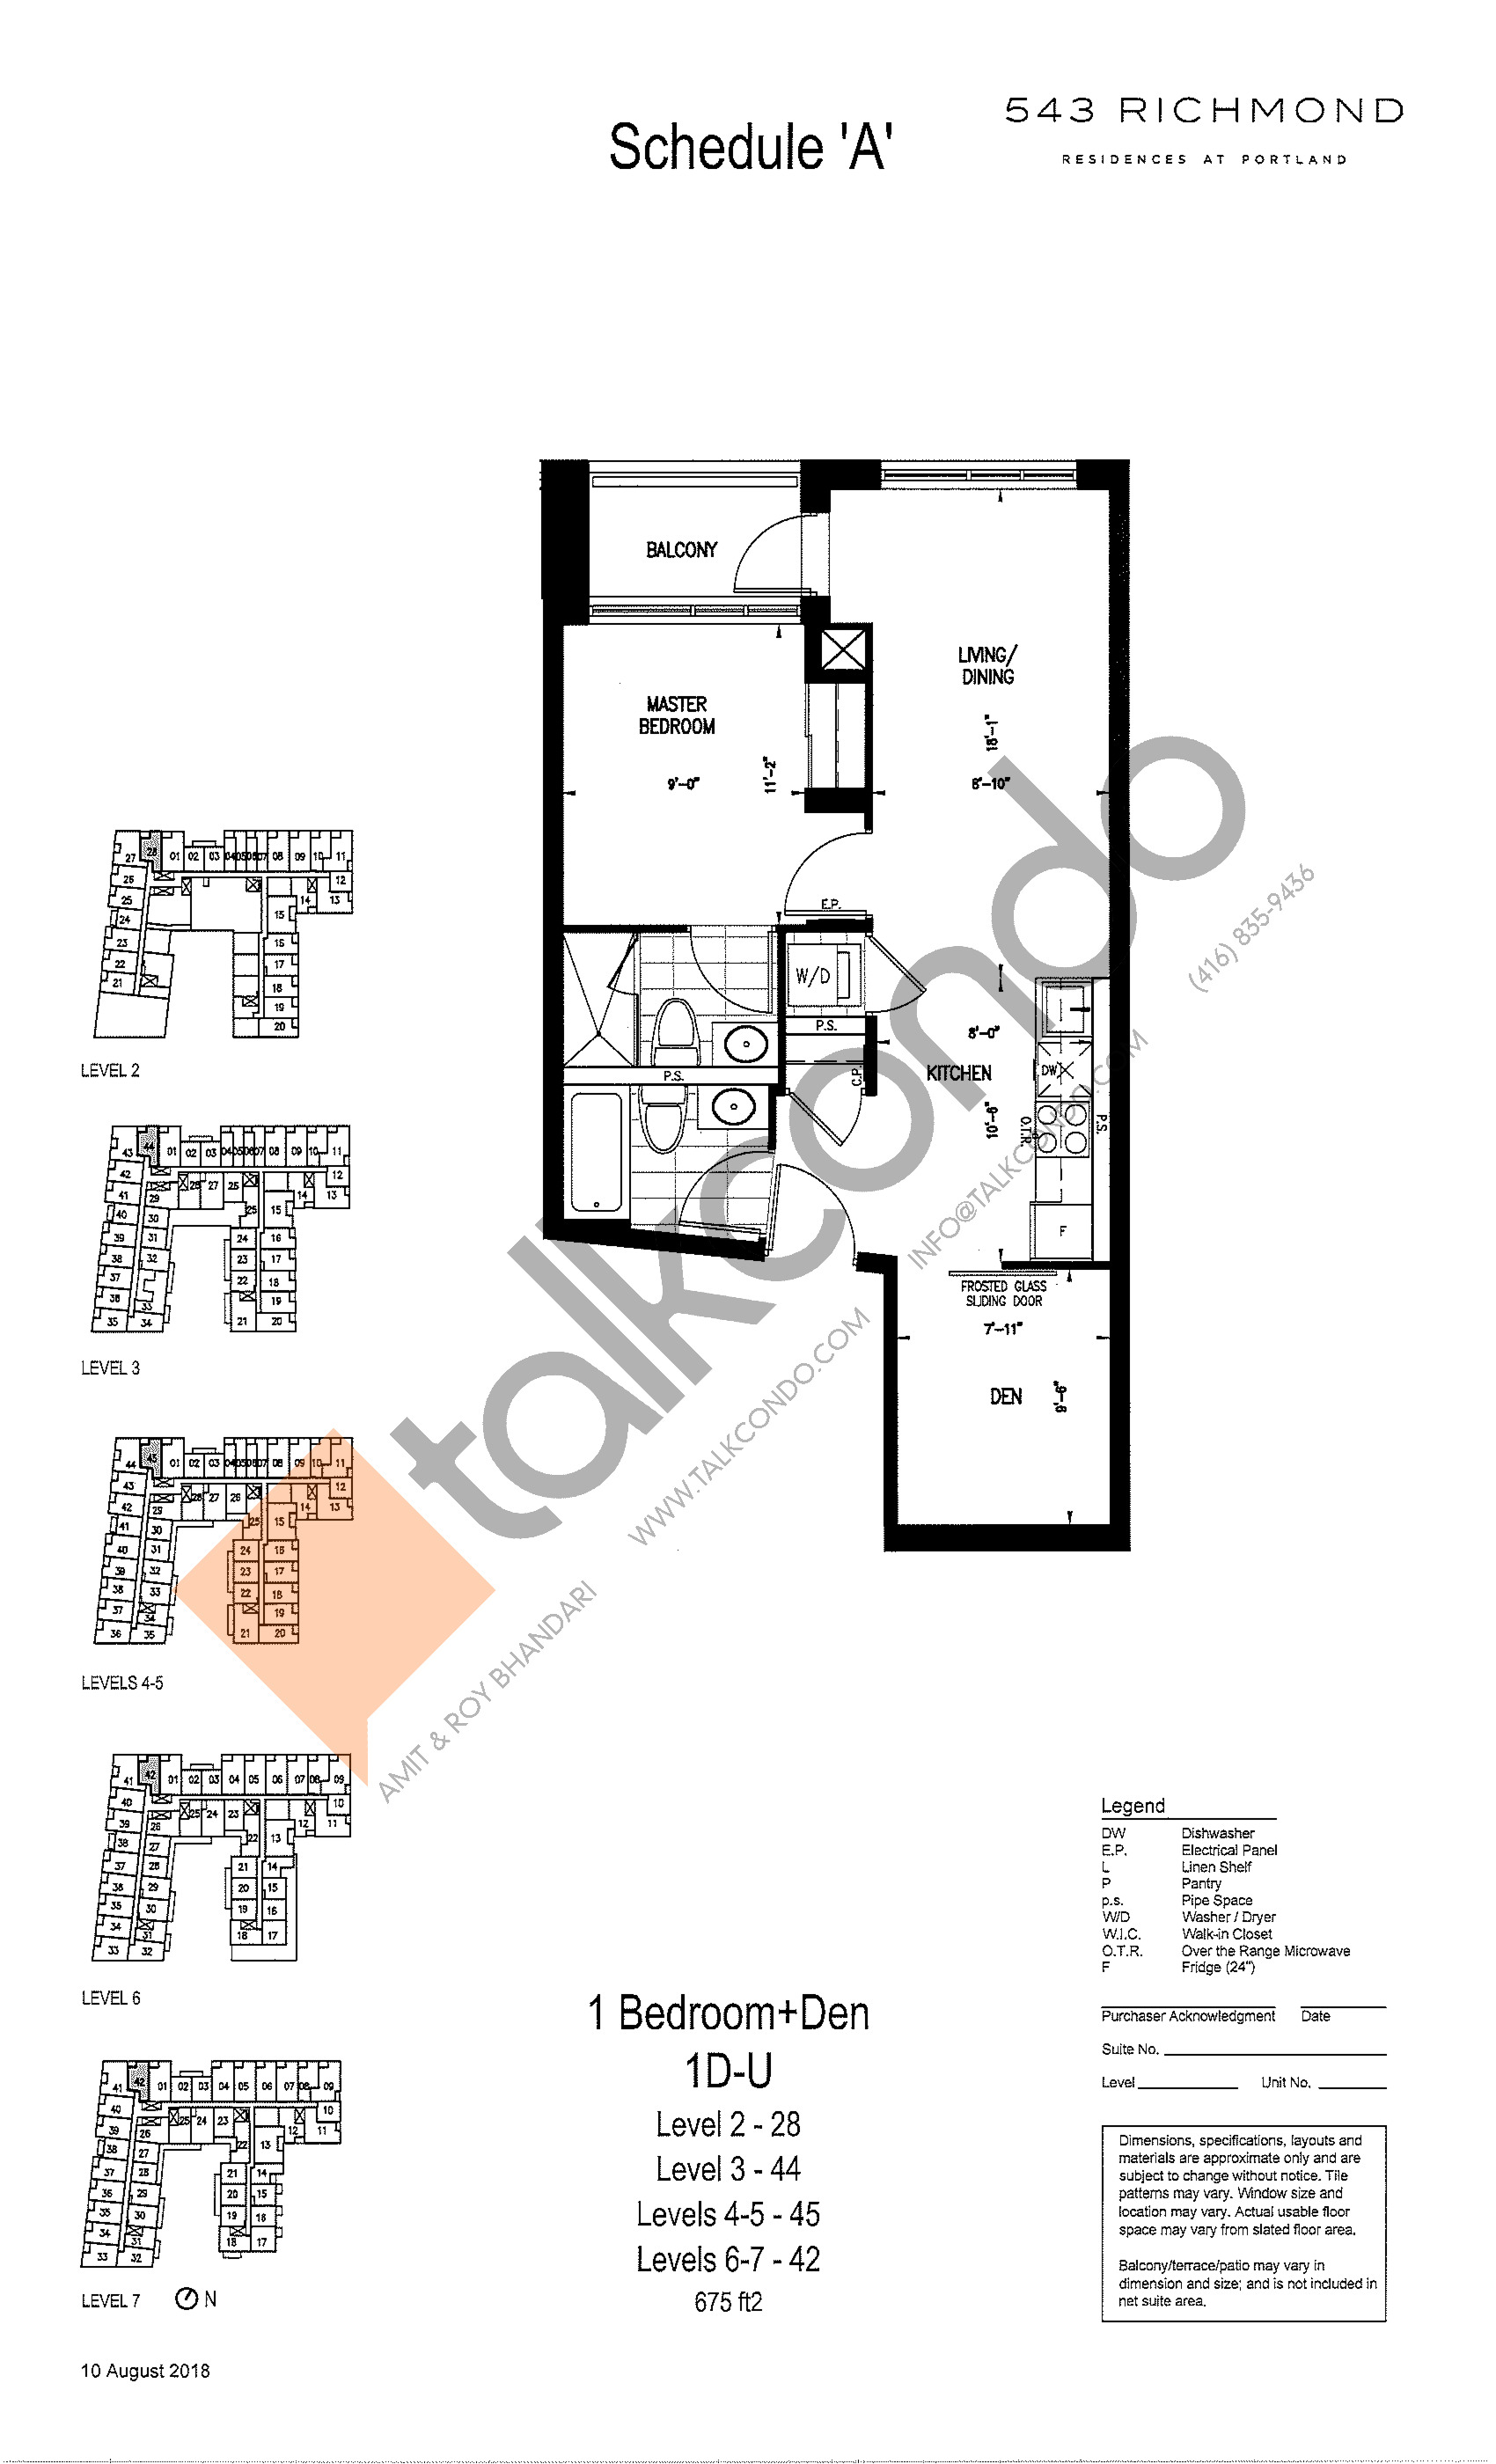 1D-U Floor Plan at 543 Richmond St Condos - 675 sq.ft